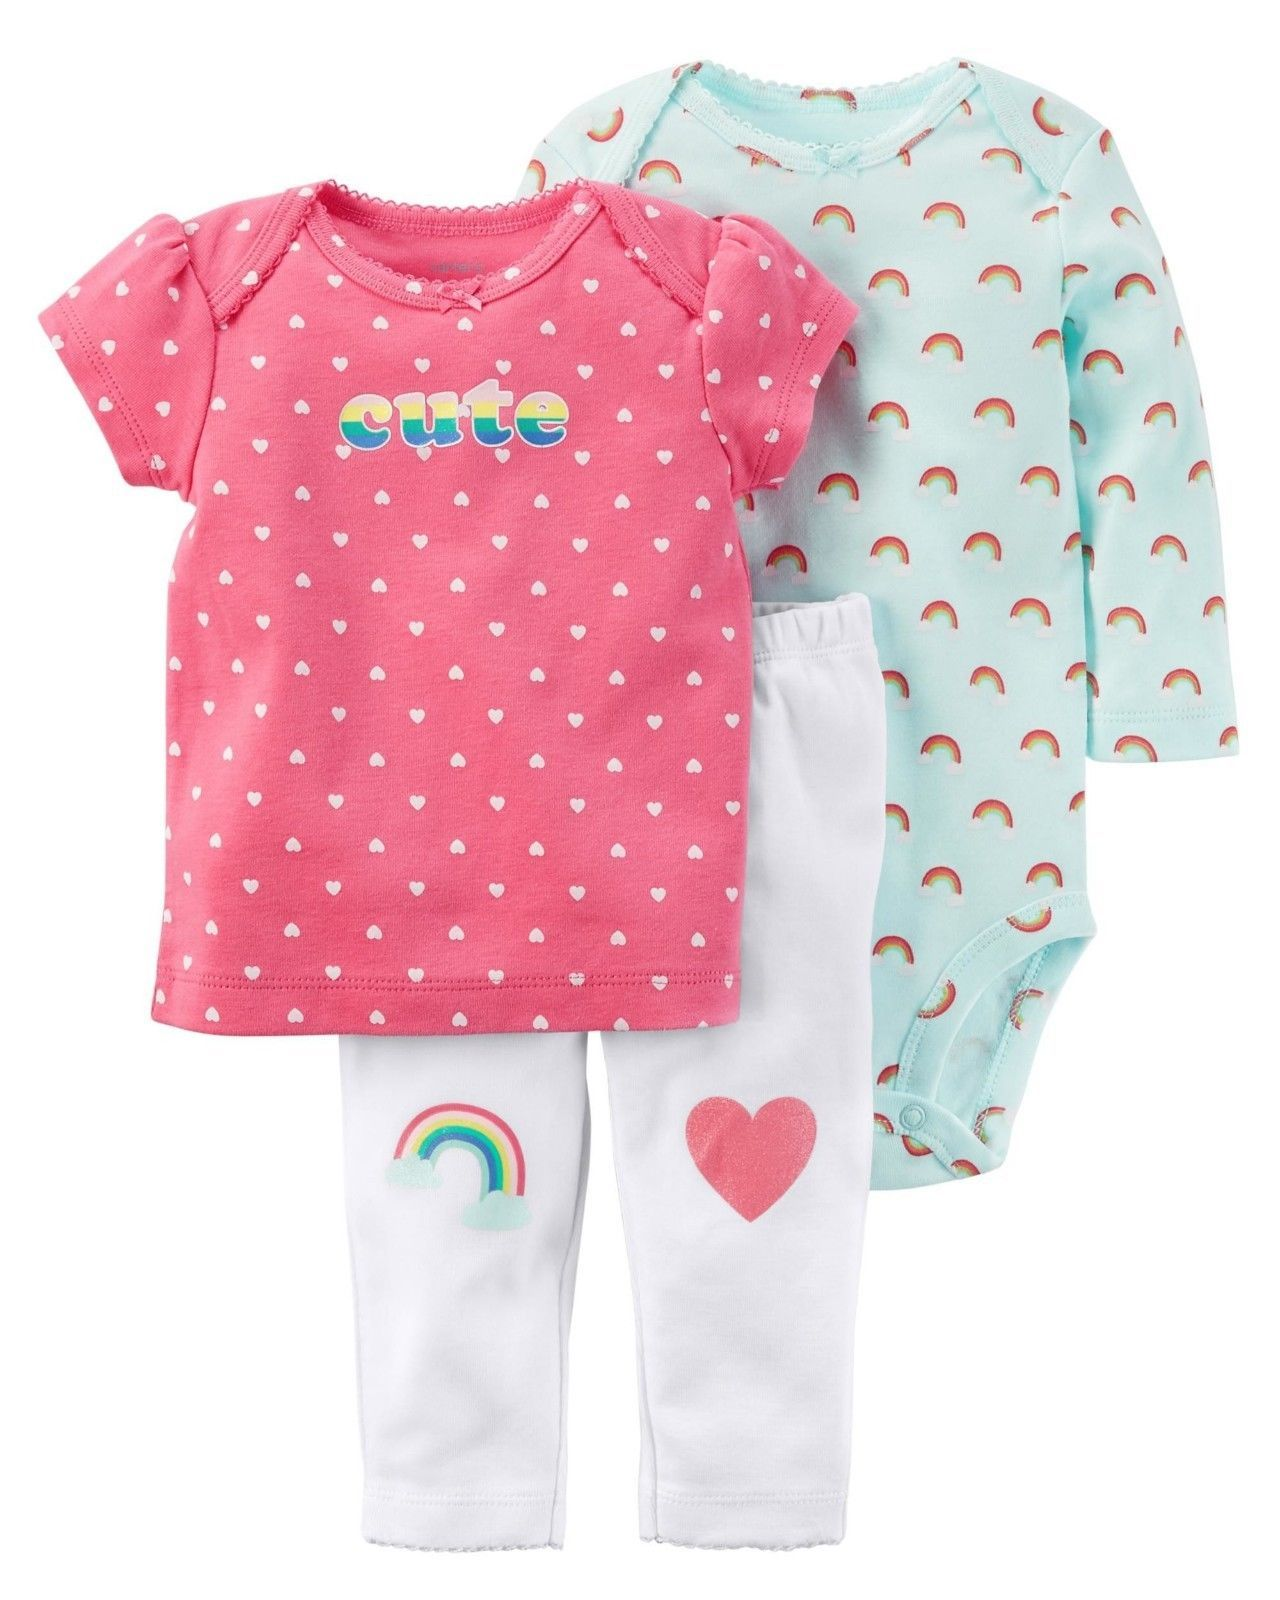 b3bb5aa55 Other Baby and Toddler Clothing 1070: New Nwt Girls Carter S Preemie  Premature 3 Piece Rainbow Heart Set Reborn Dolls -> BUY IT NOW ONLY: $14.99  on #eBay ...